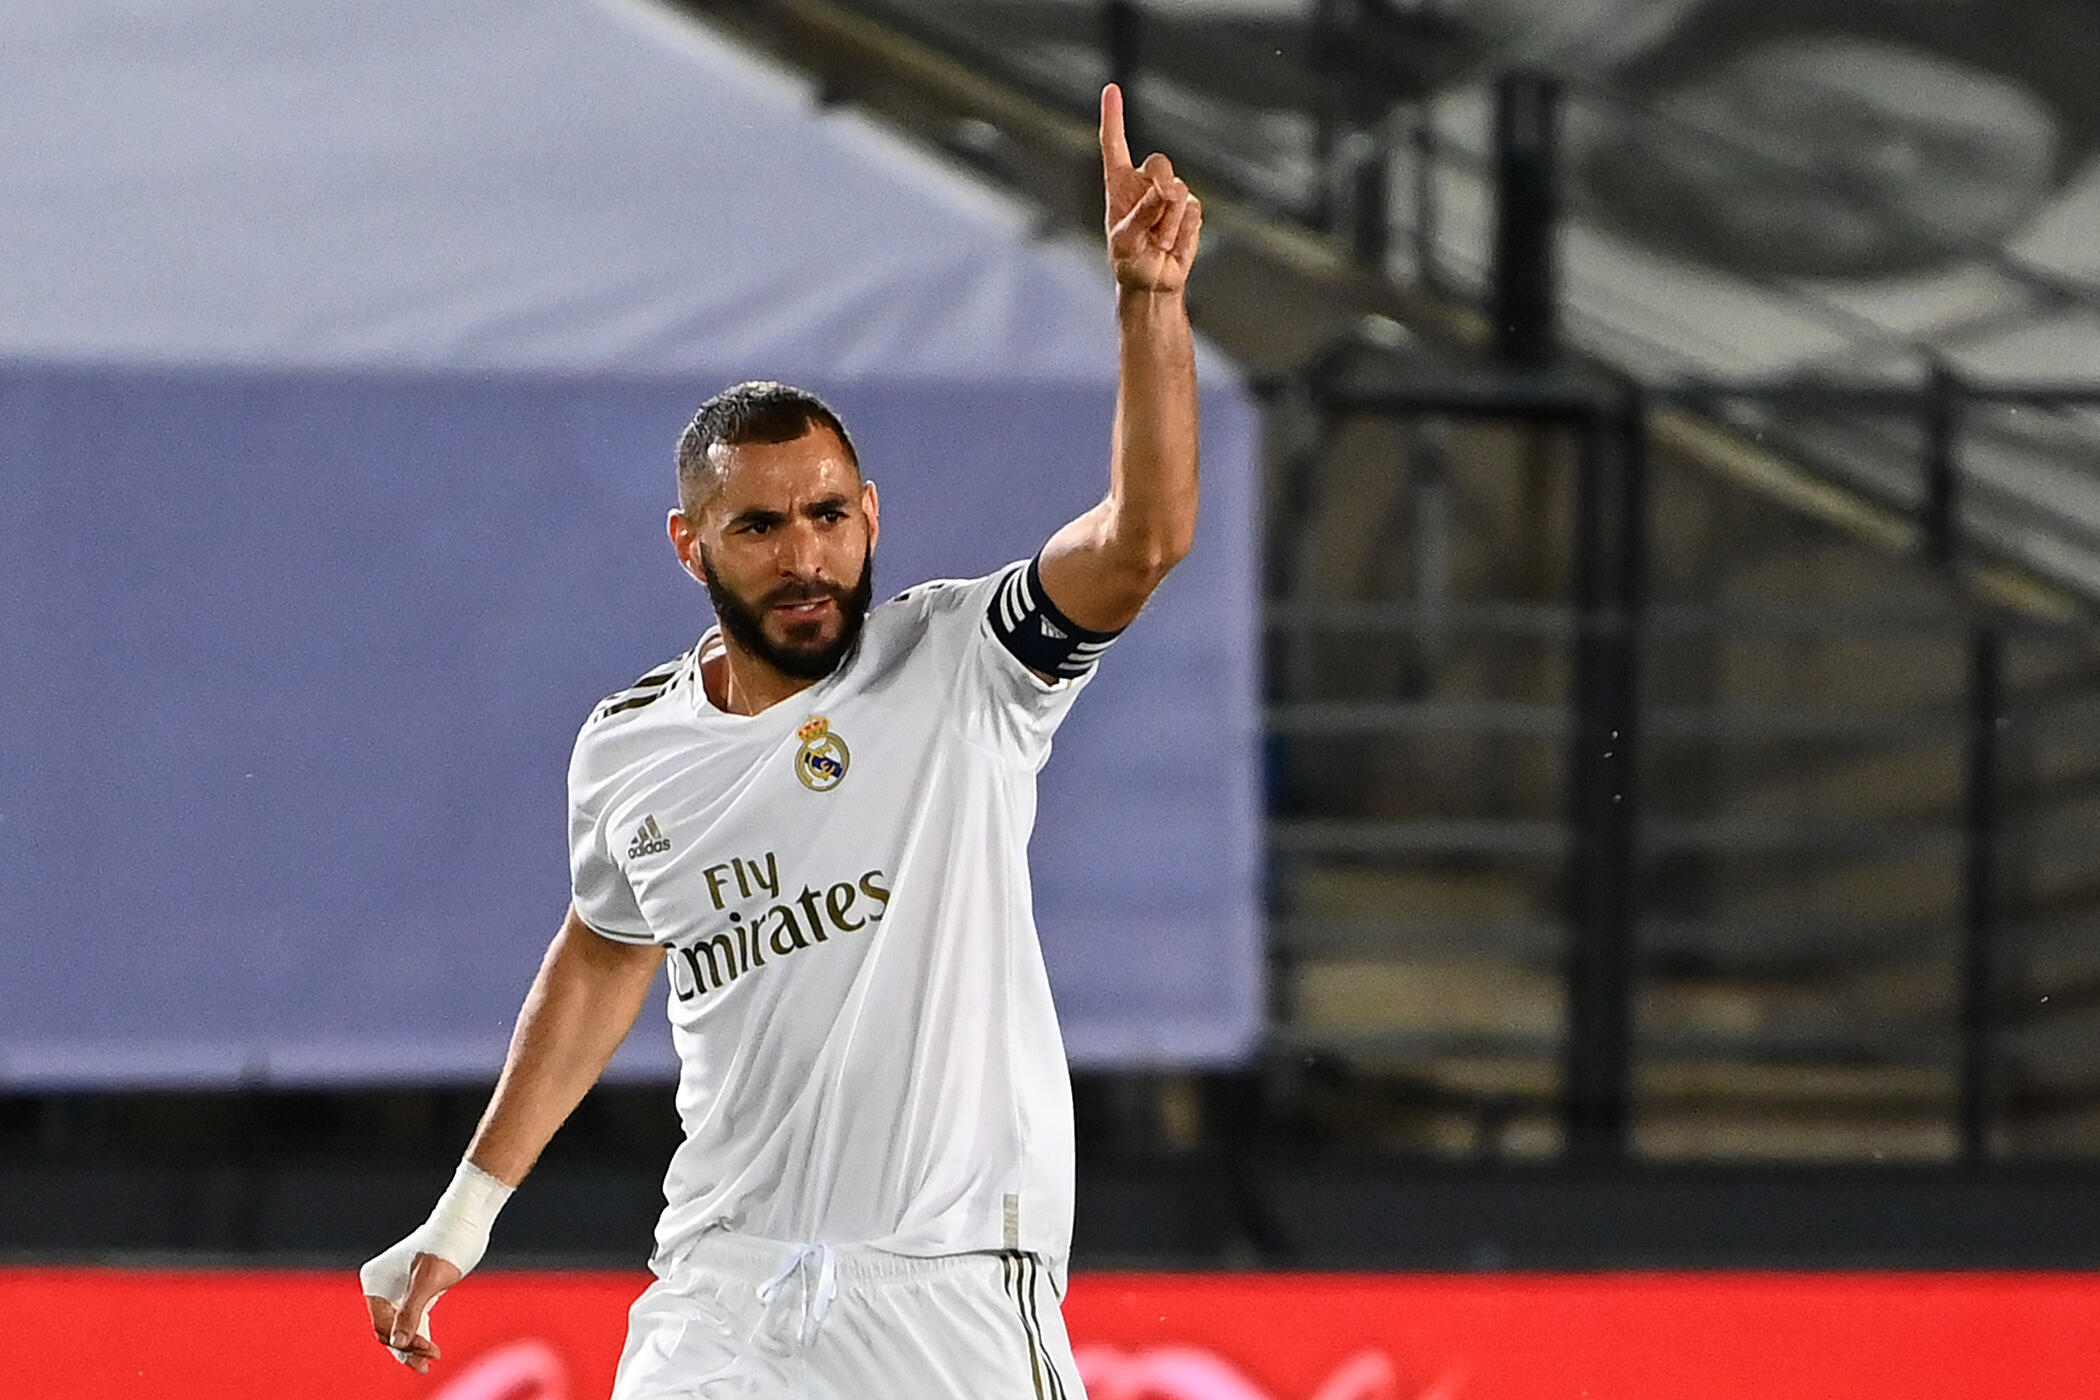 Karim Benzema scored his 23rd goal of the season as Real Madrid beat Alaves 2-0 on Friday.